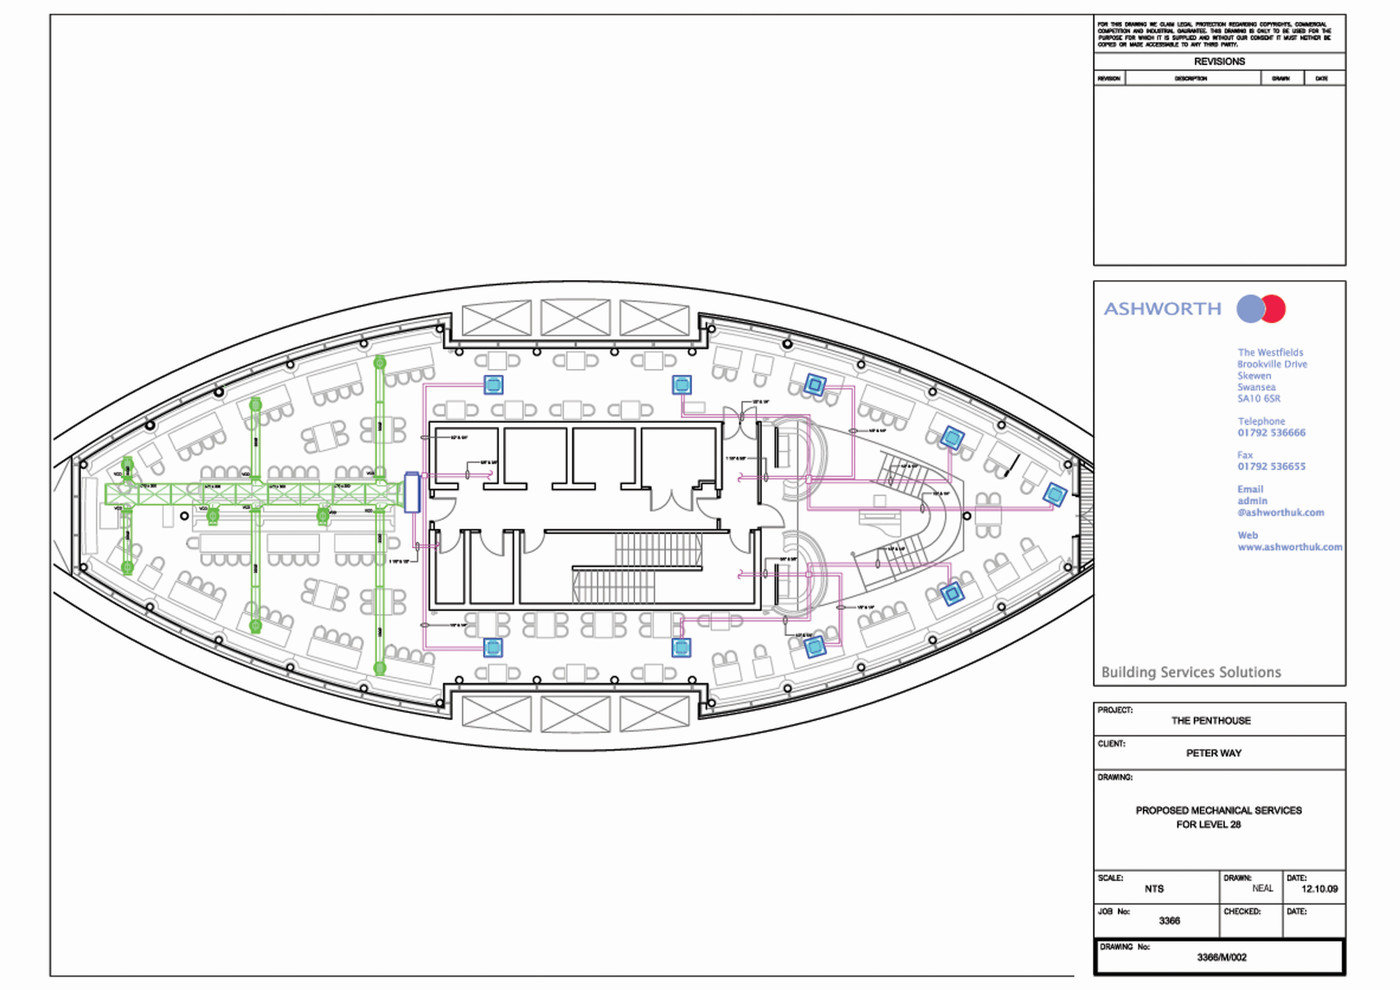 Technical CAD by Neal Thomas at Coroflot.com